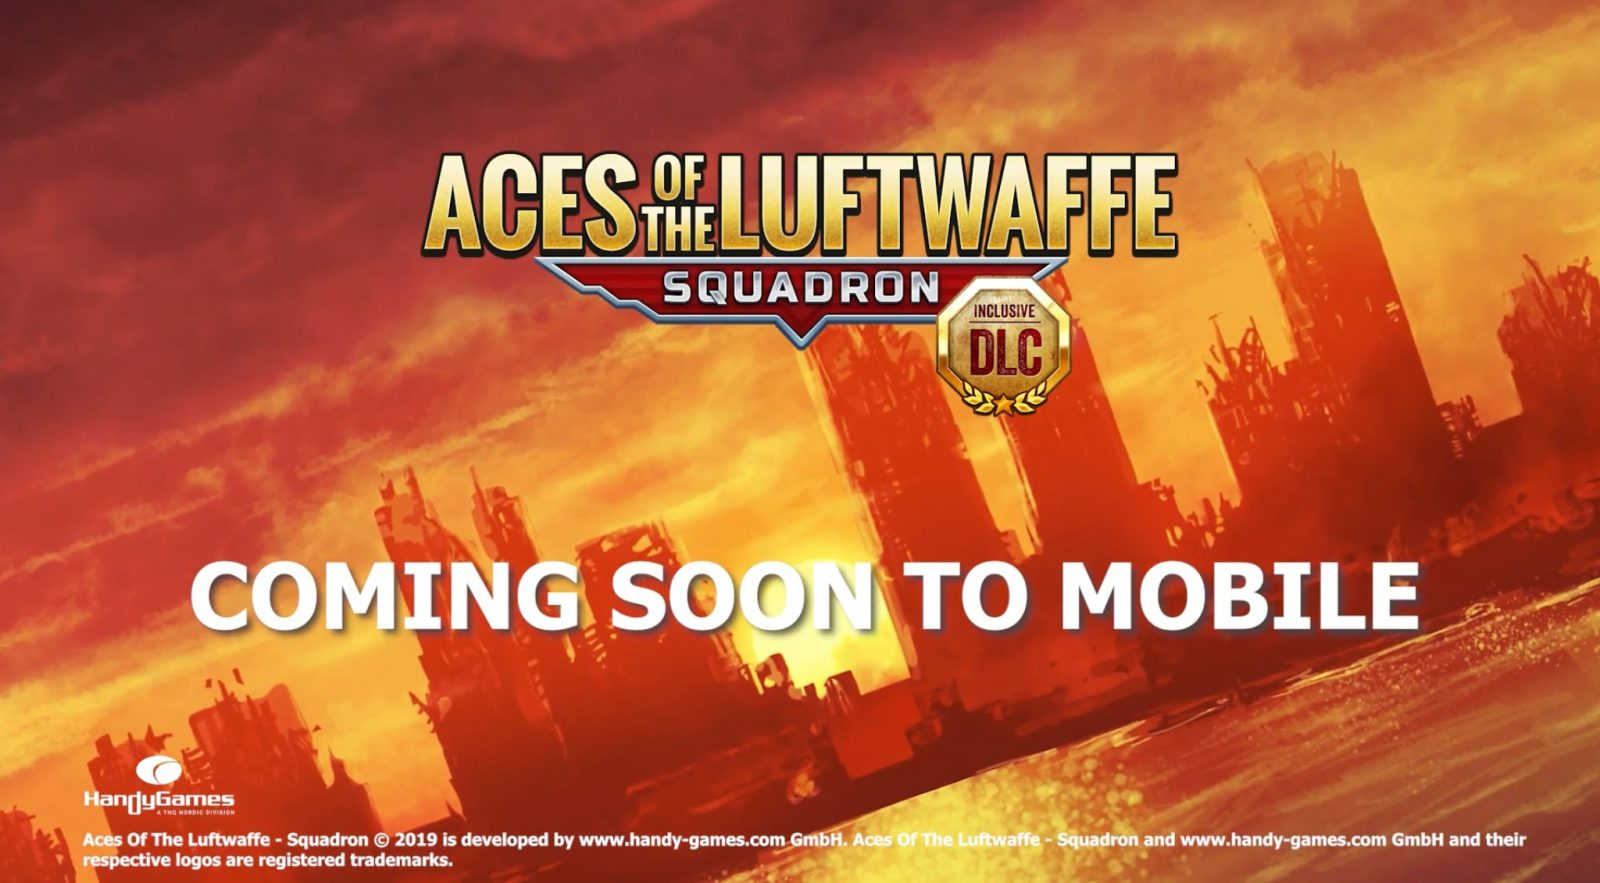 Aces of the Luftwaffe - Squadron: Extended Edition